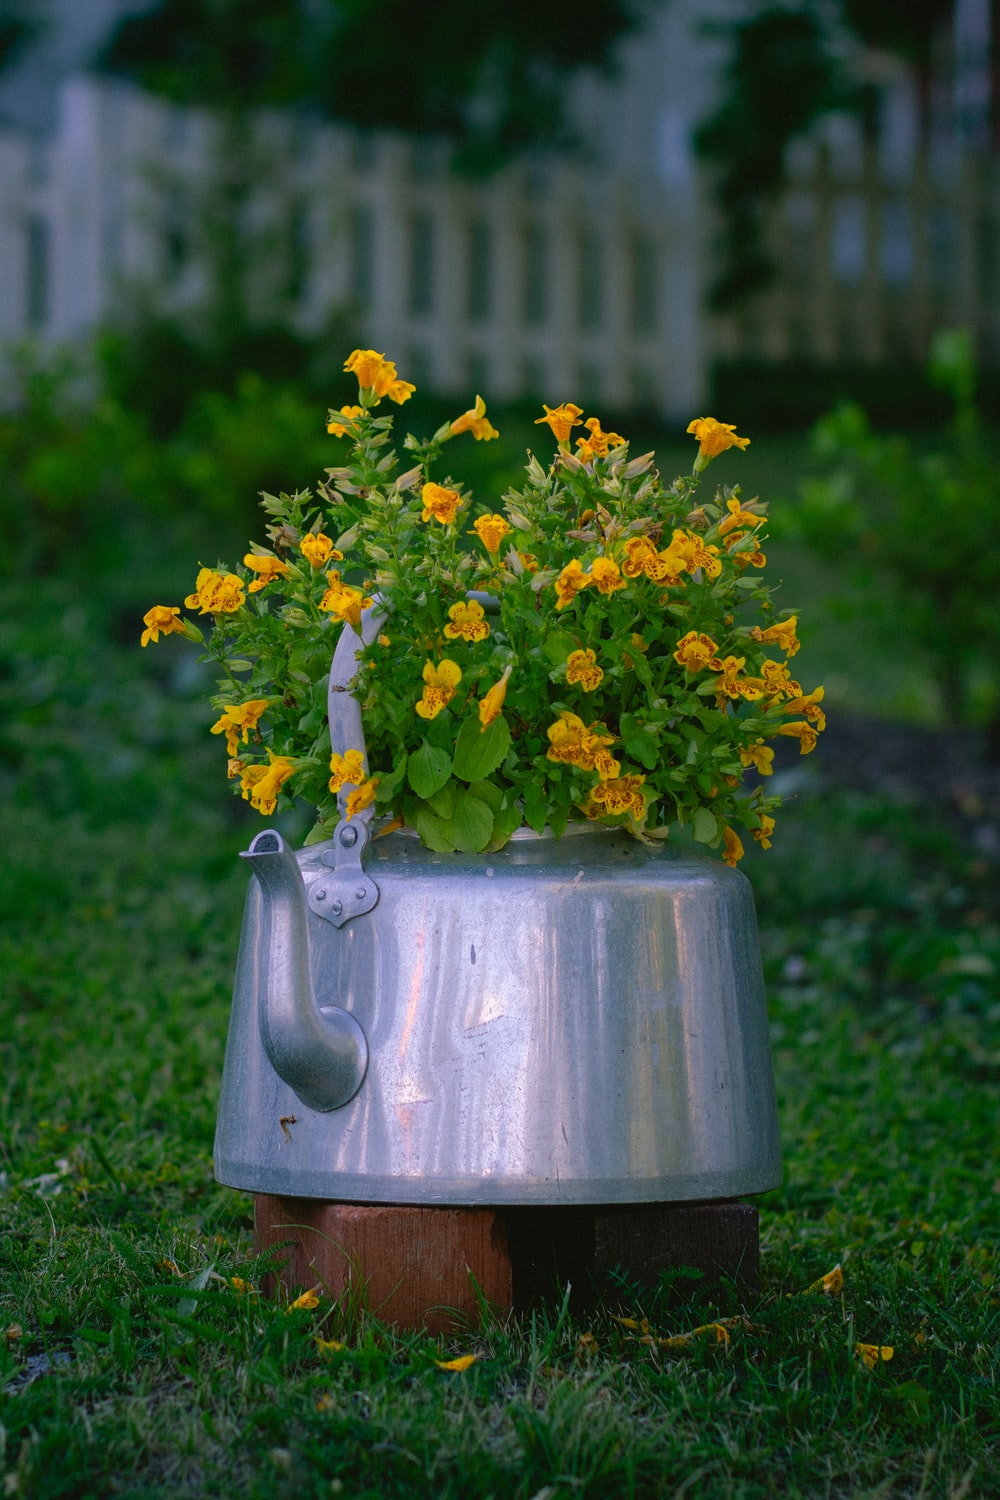 yellow flowers in gray vase on green grass field